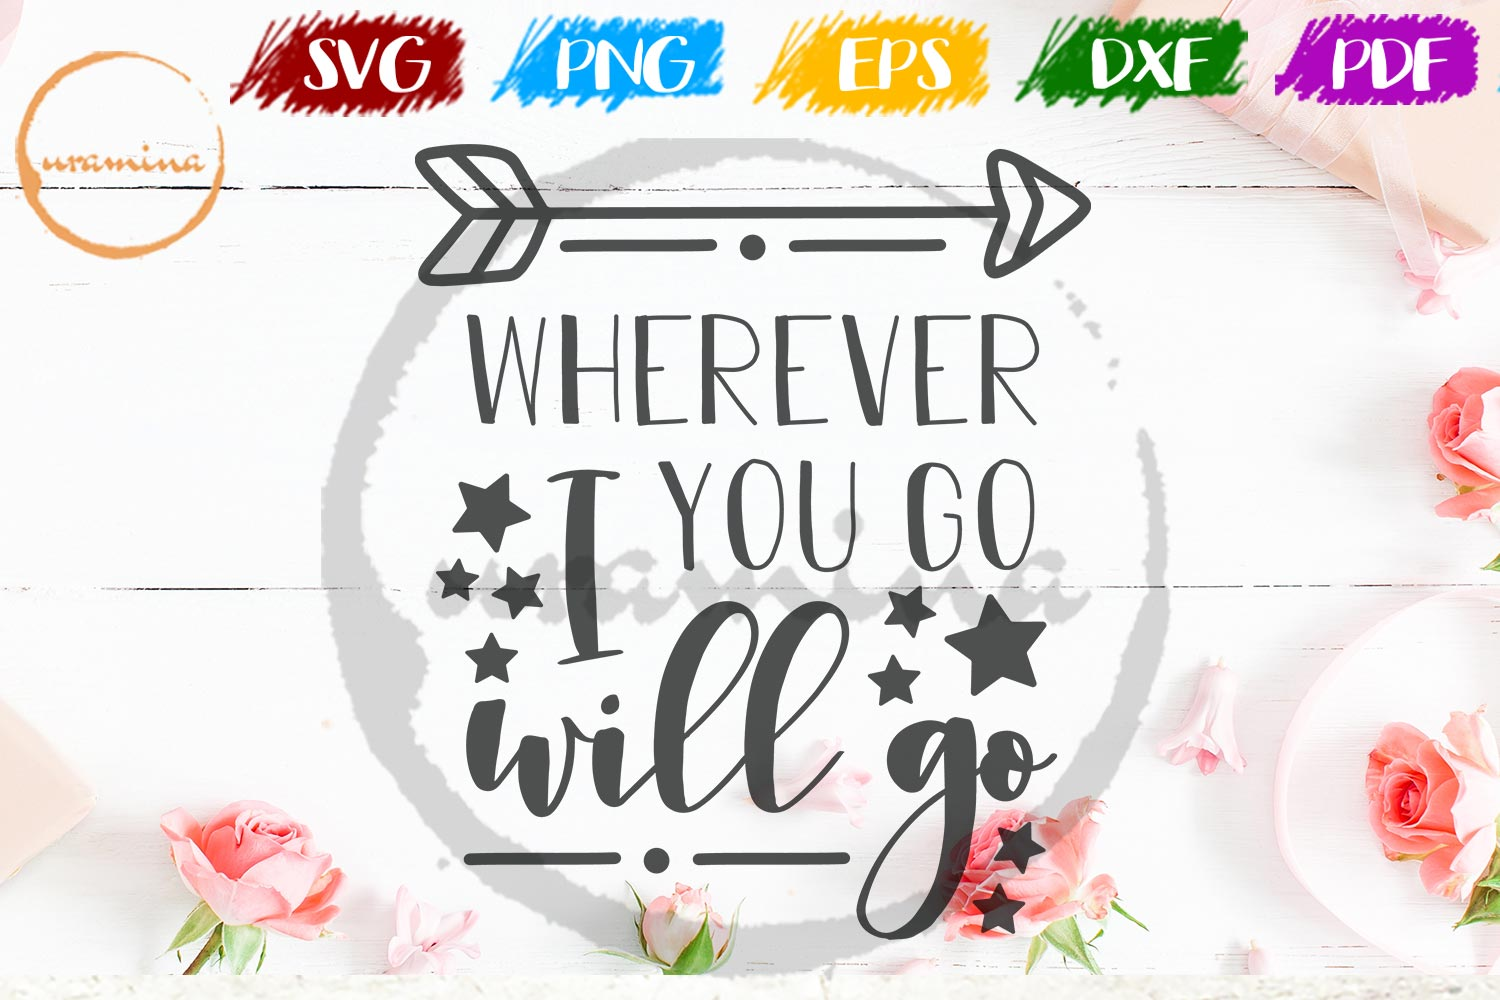 Download Free Wherever You Go I Will Go Graphic By Uramina Creative Fabrica for Cricut Explore, Silhouette and other cutting machines.